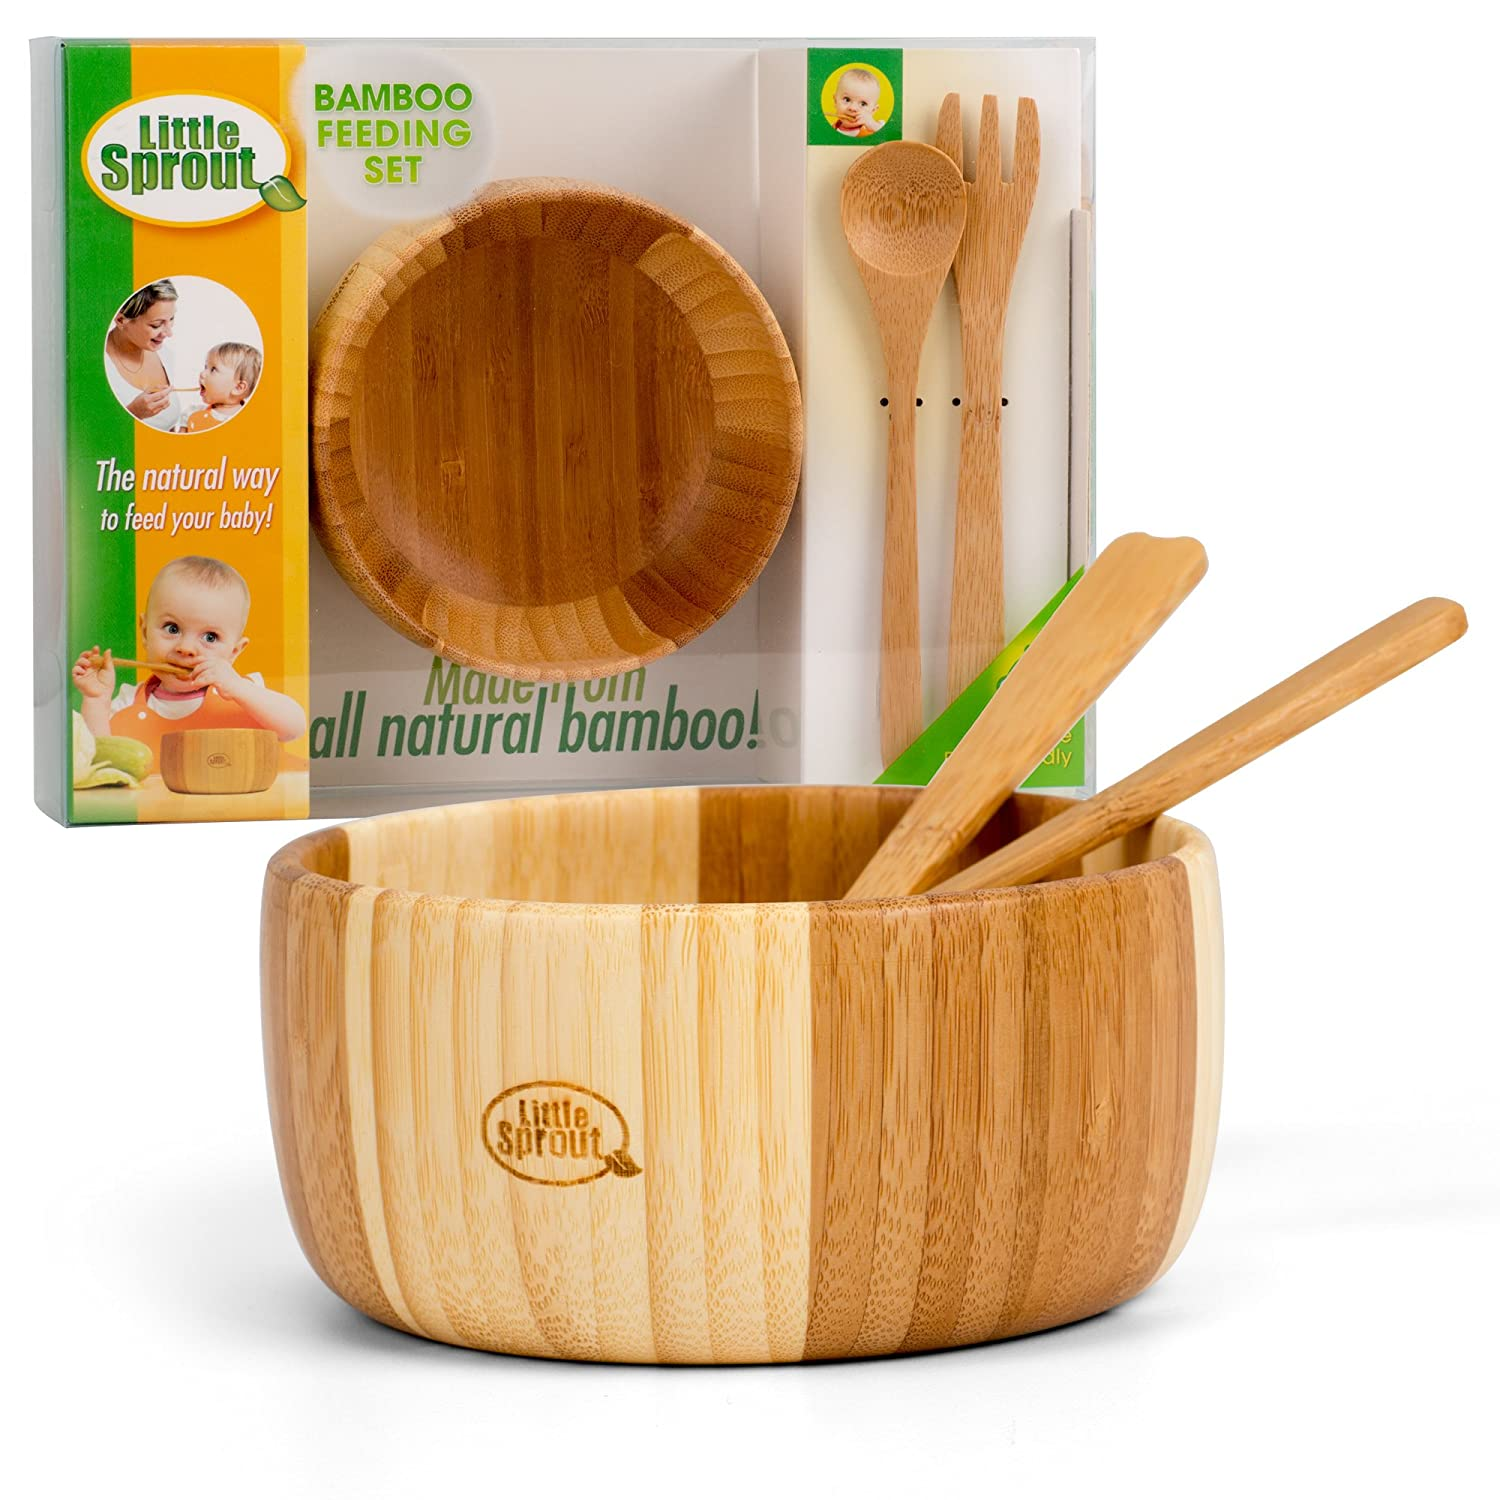 Bamboo Feeding Set 3pc includes Bowl, Spoon and Fork, BPA Free - Infant and Kid Friendly Little Sprout SPC-BFS-536